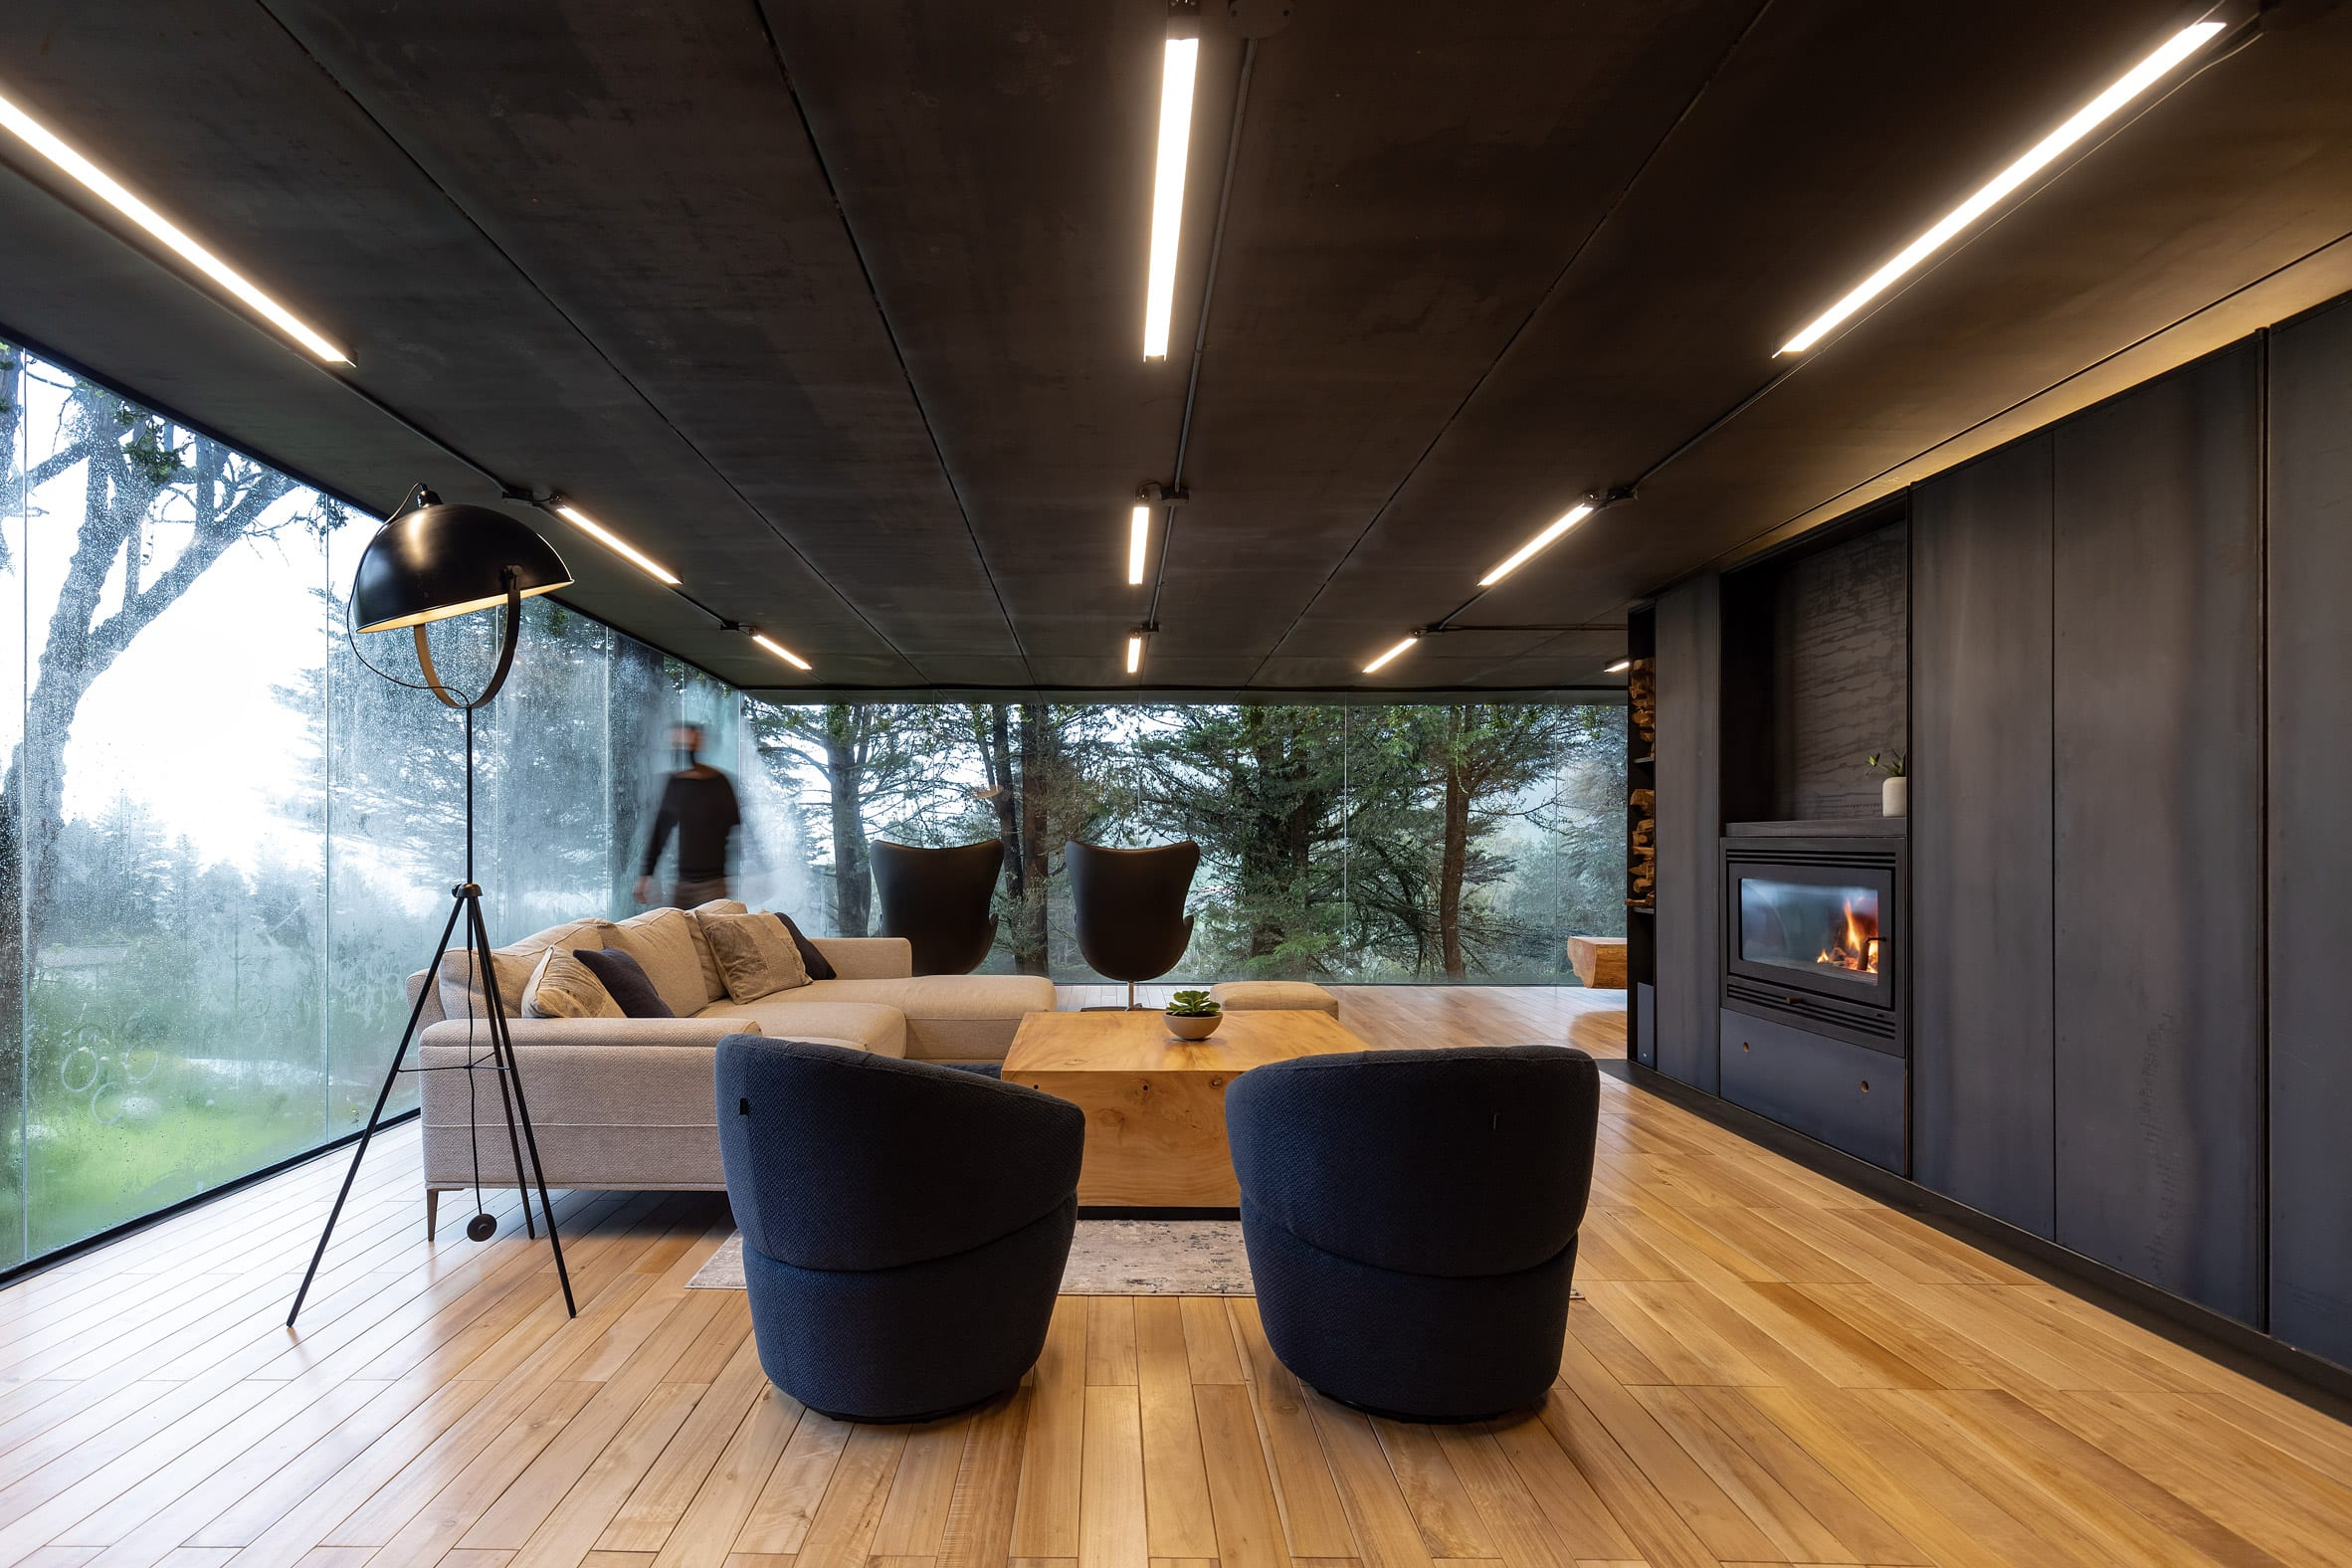 Living space in glass extension